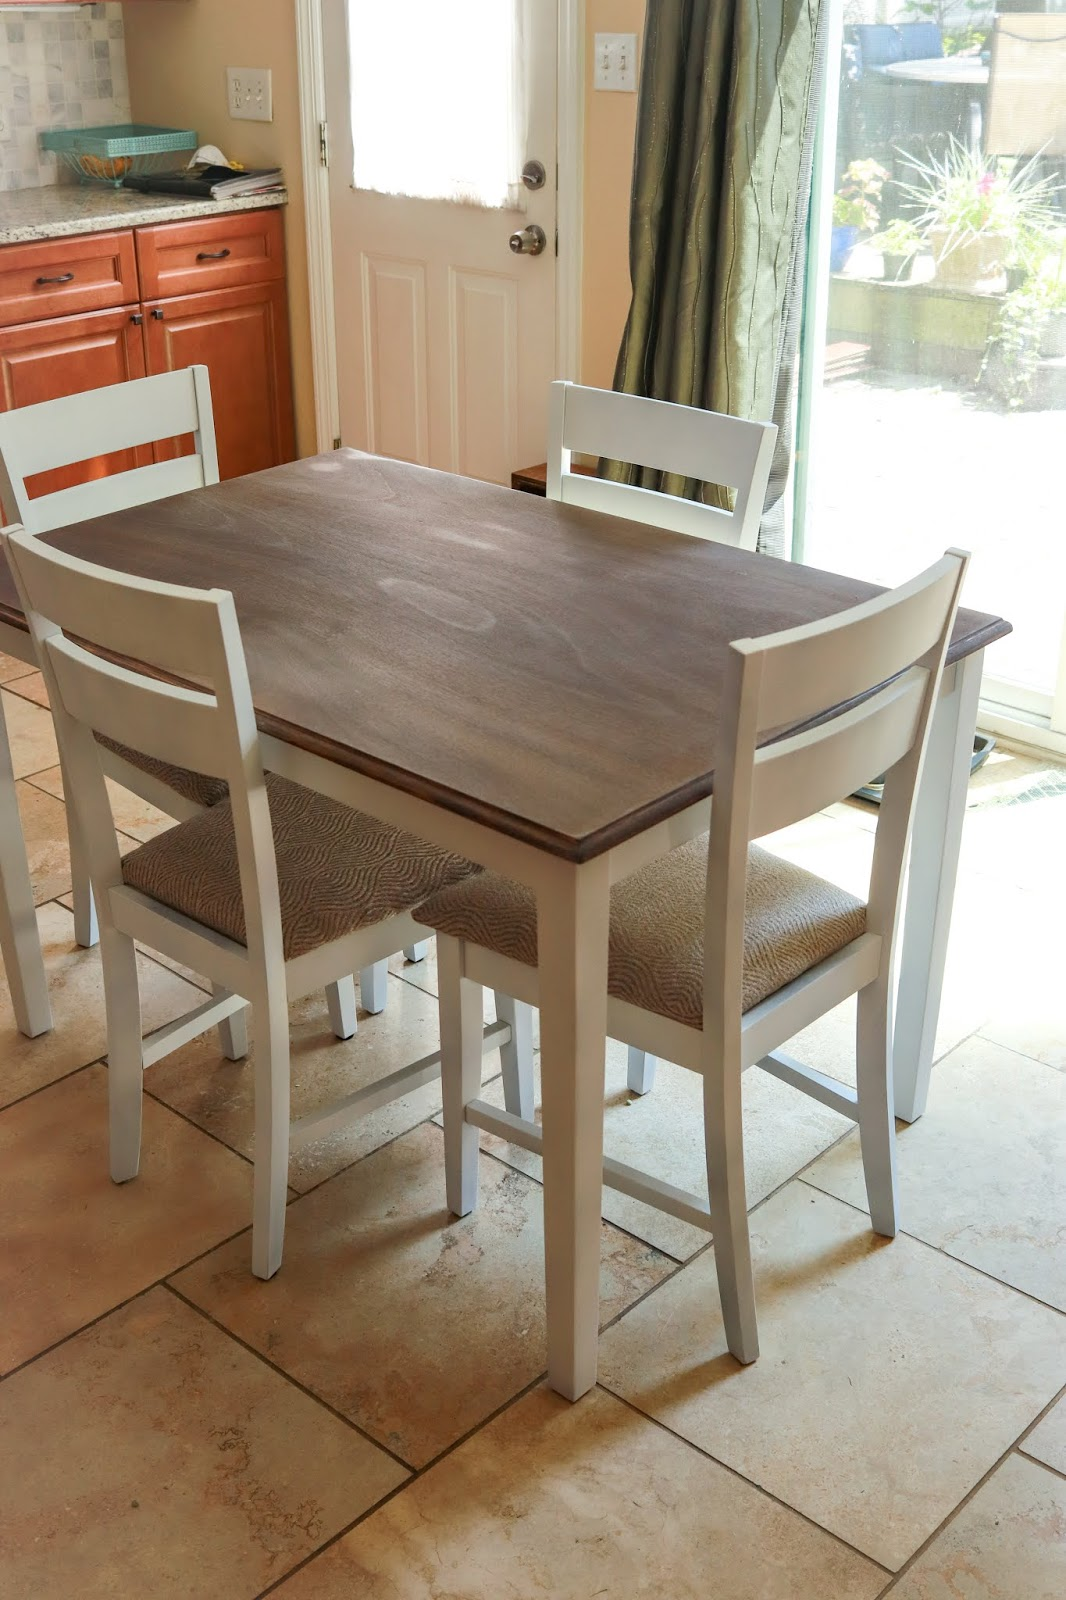 Refurbished Kitchen Table 6 Seat Beautifully Candid How We Refinished Our Farmhouse Diy